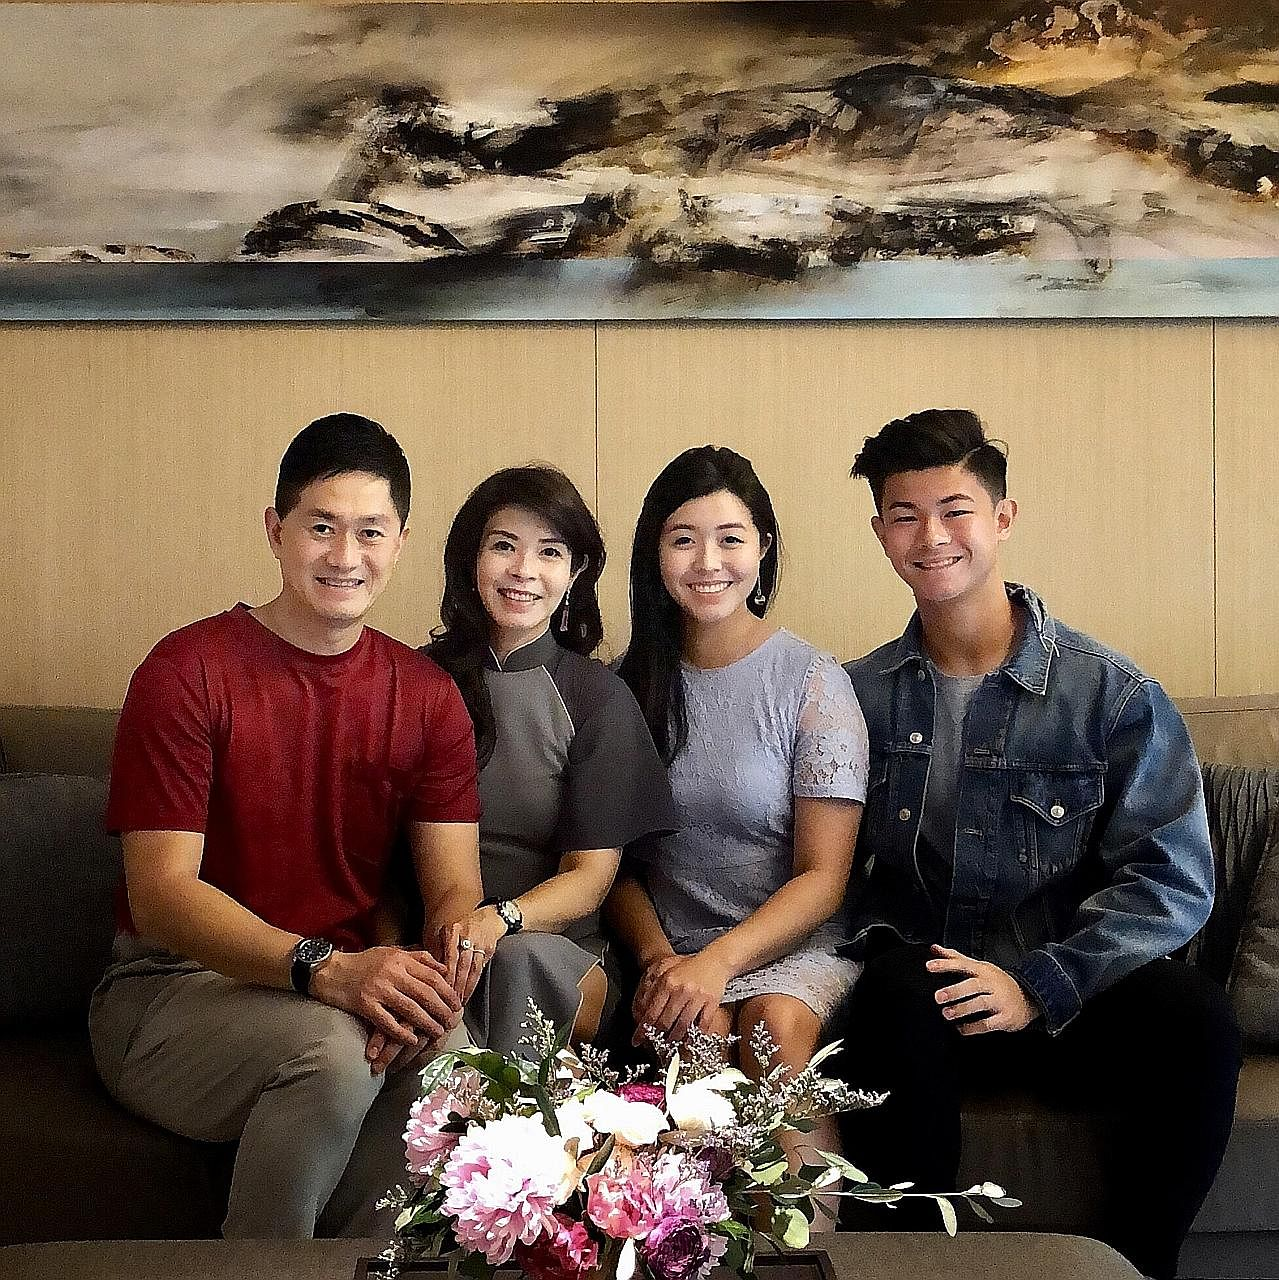 Mr James Quan and Ms Winnie Chan with their children, Vera and Josh, in a recent photo.